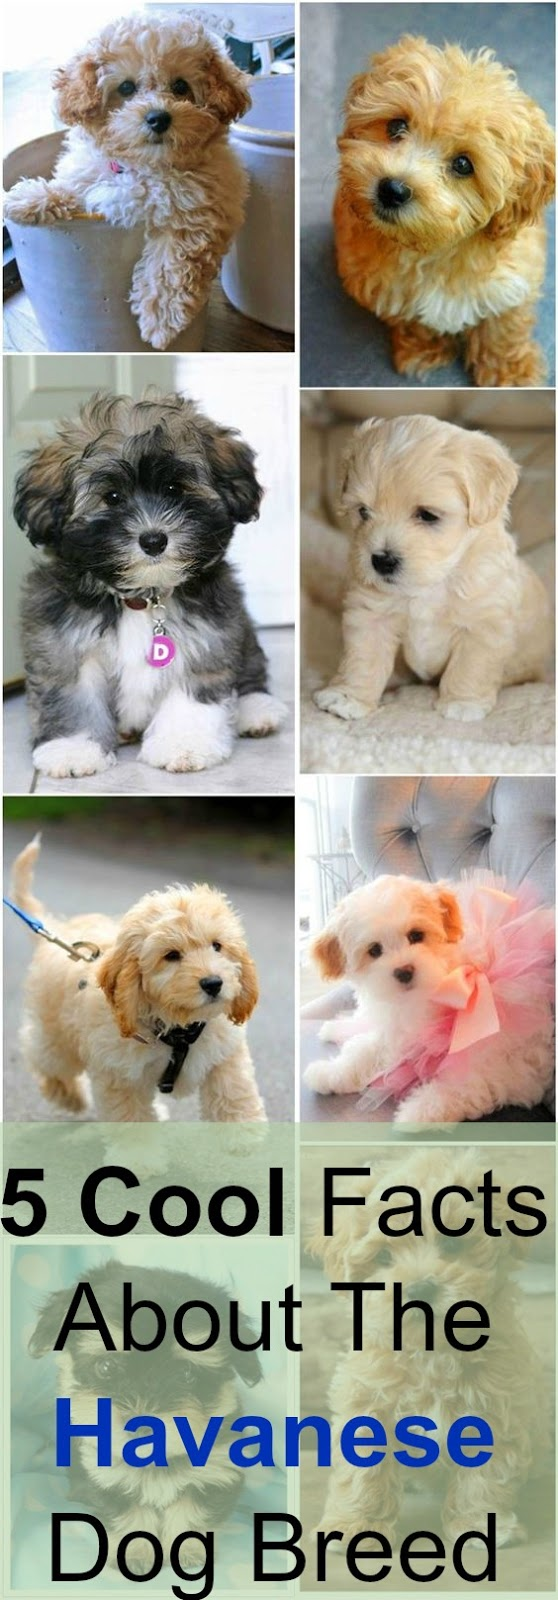 5 Cool Facts About The Havanese Dog Breed